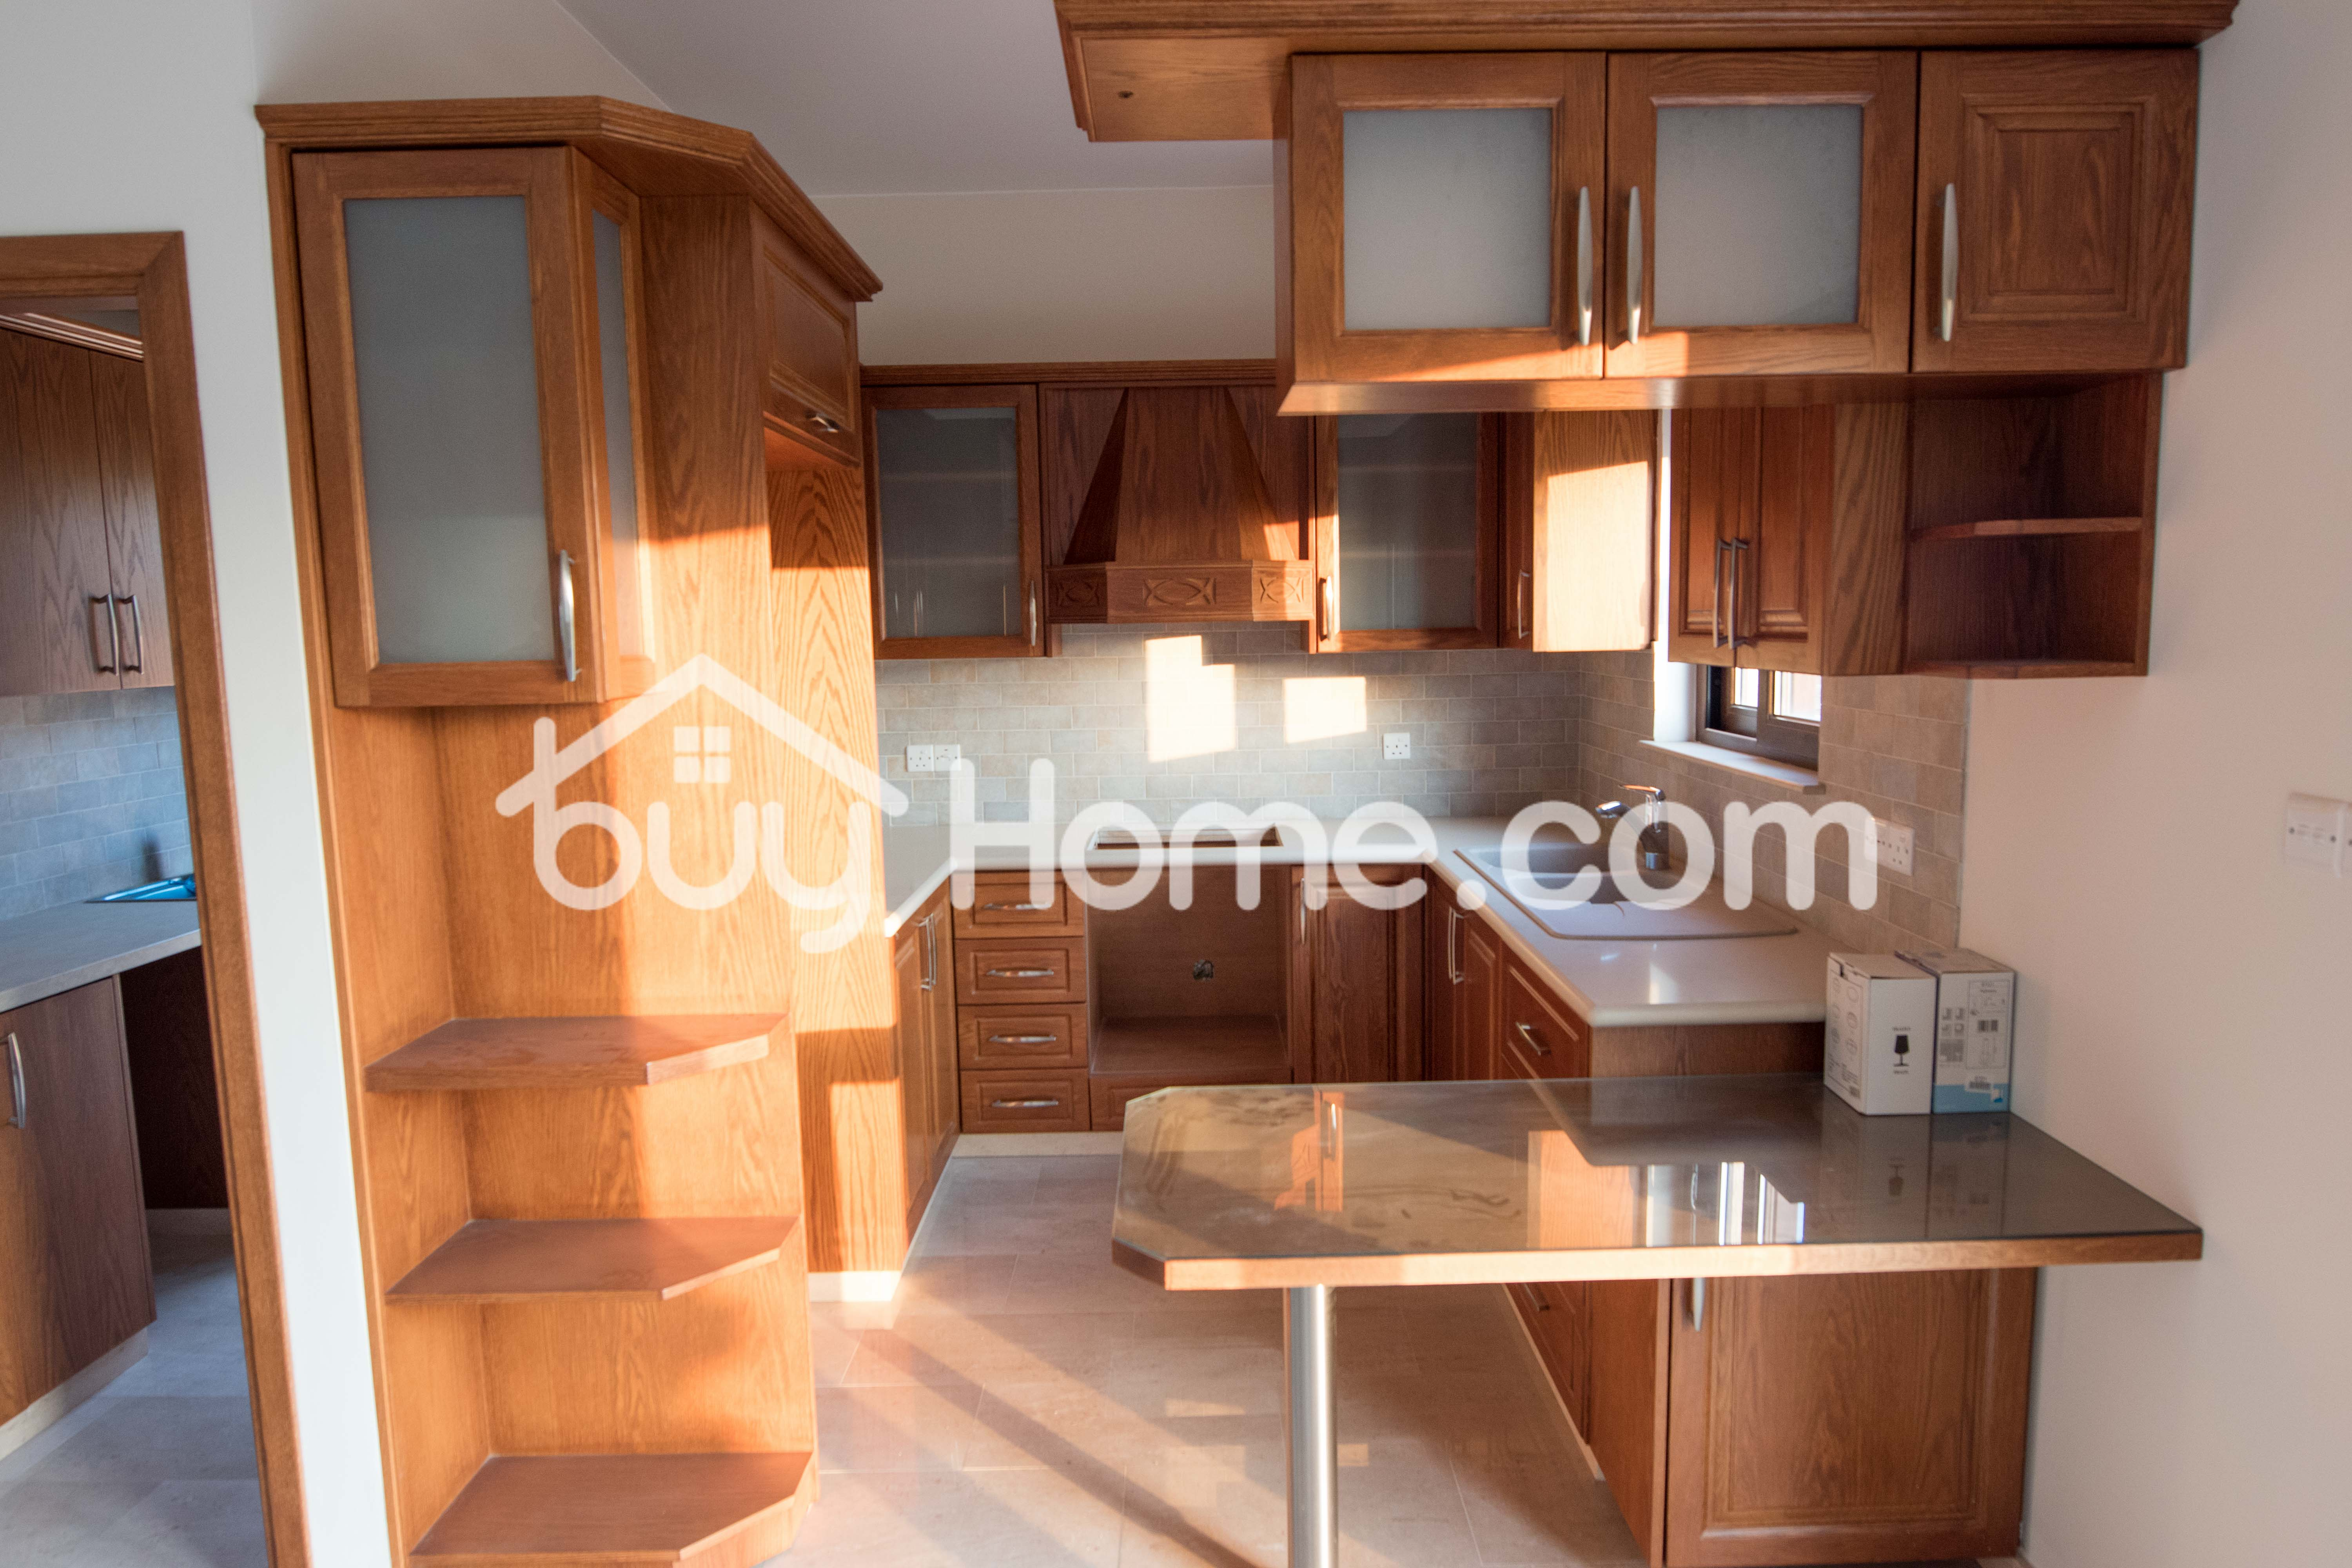 3 Bedroom House In Pyrgos | BuyHome